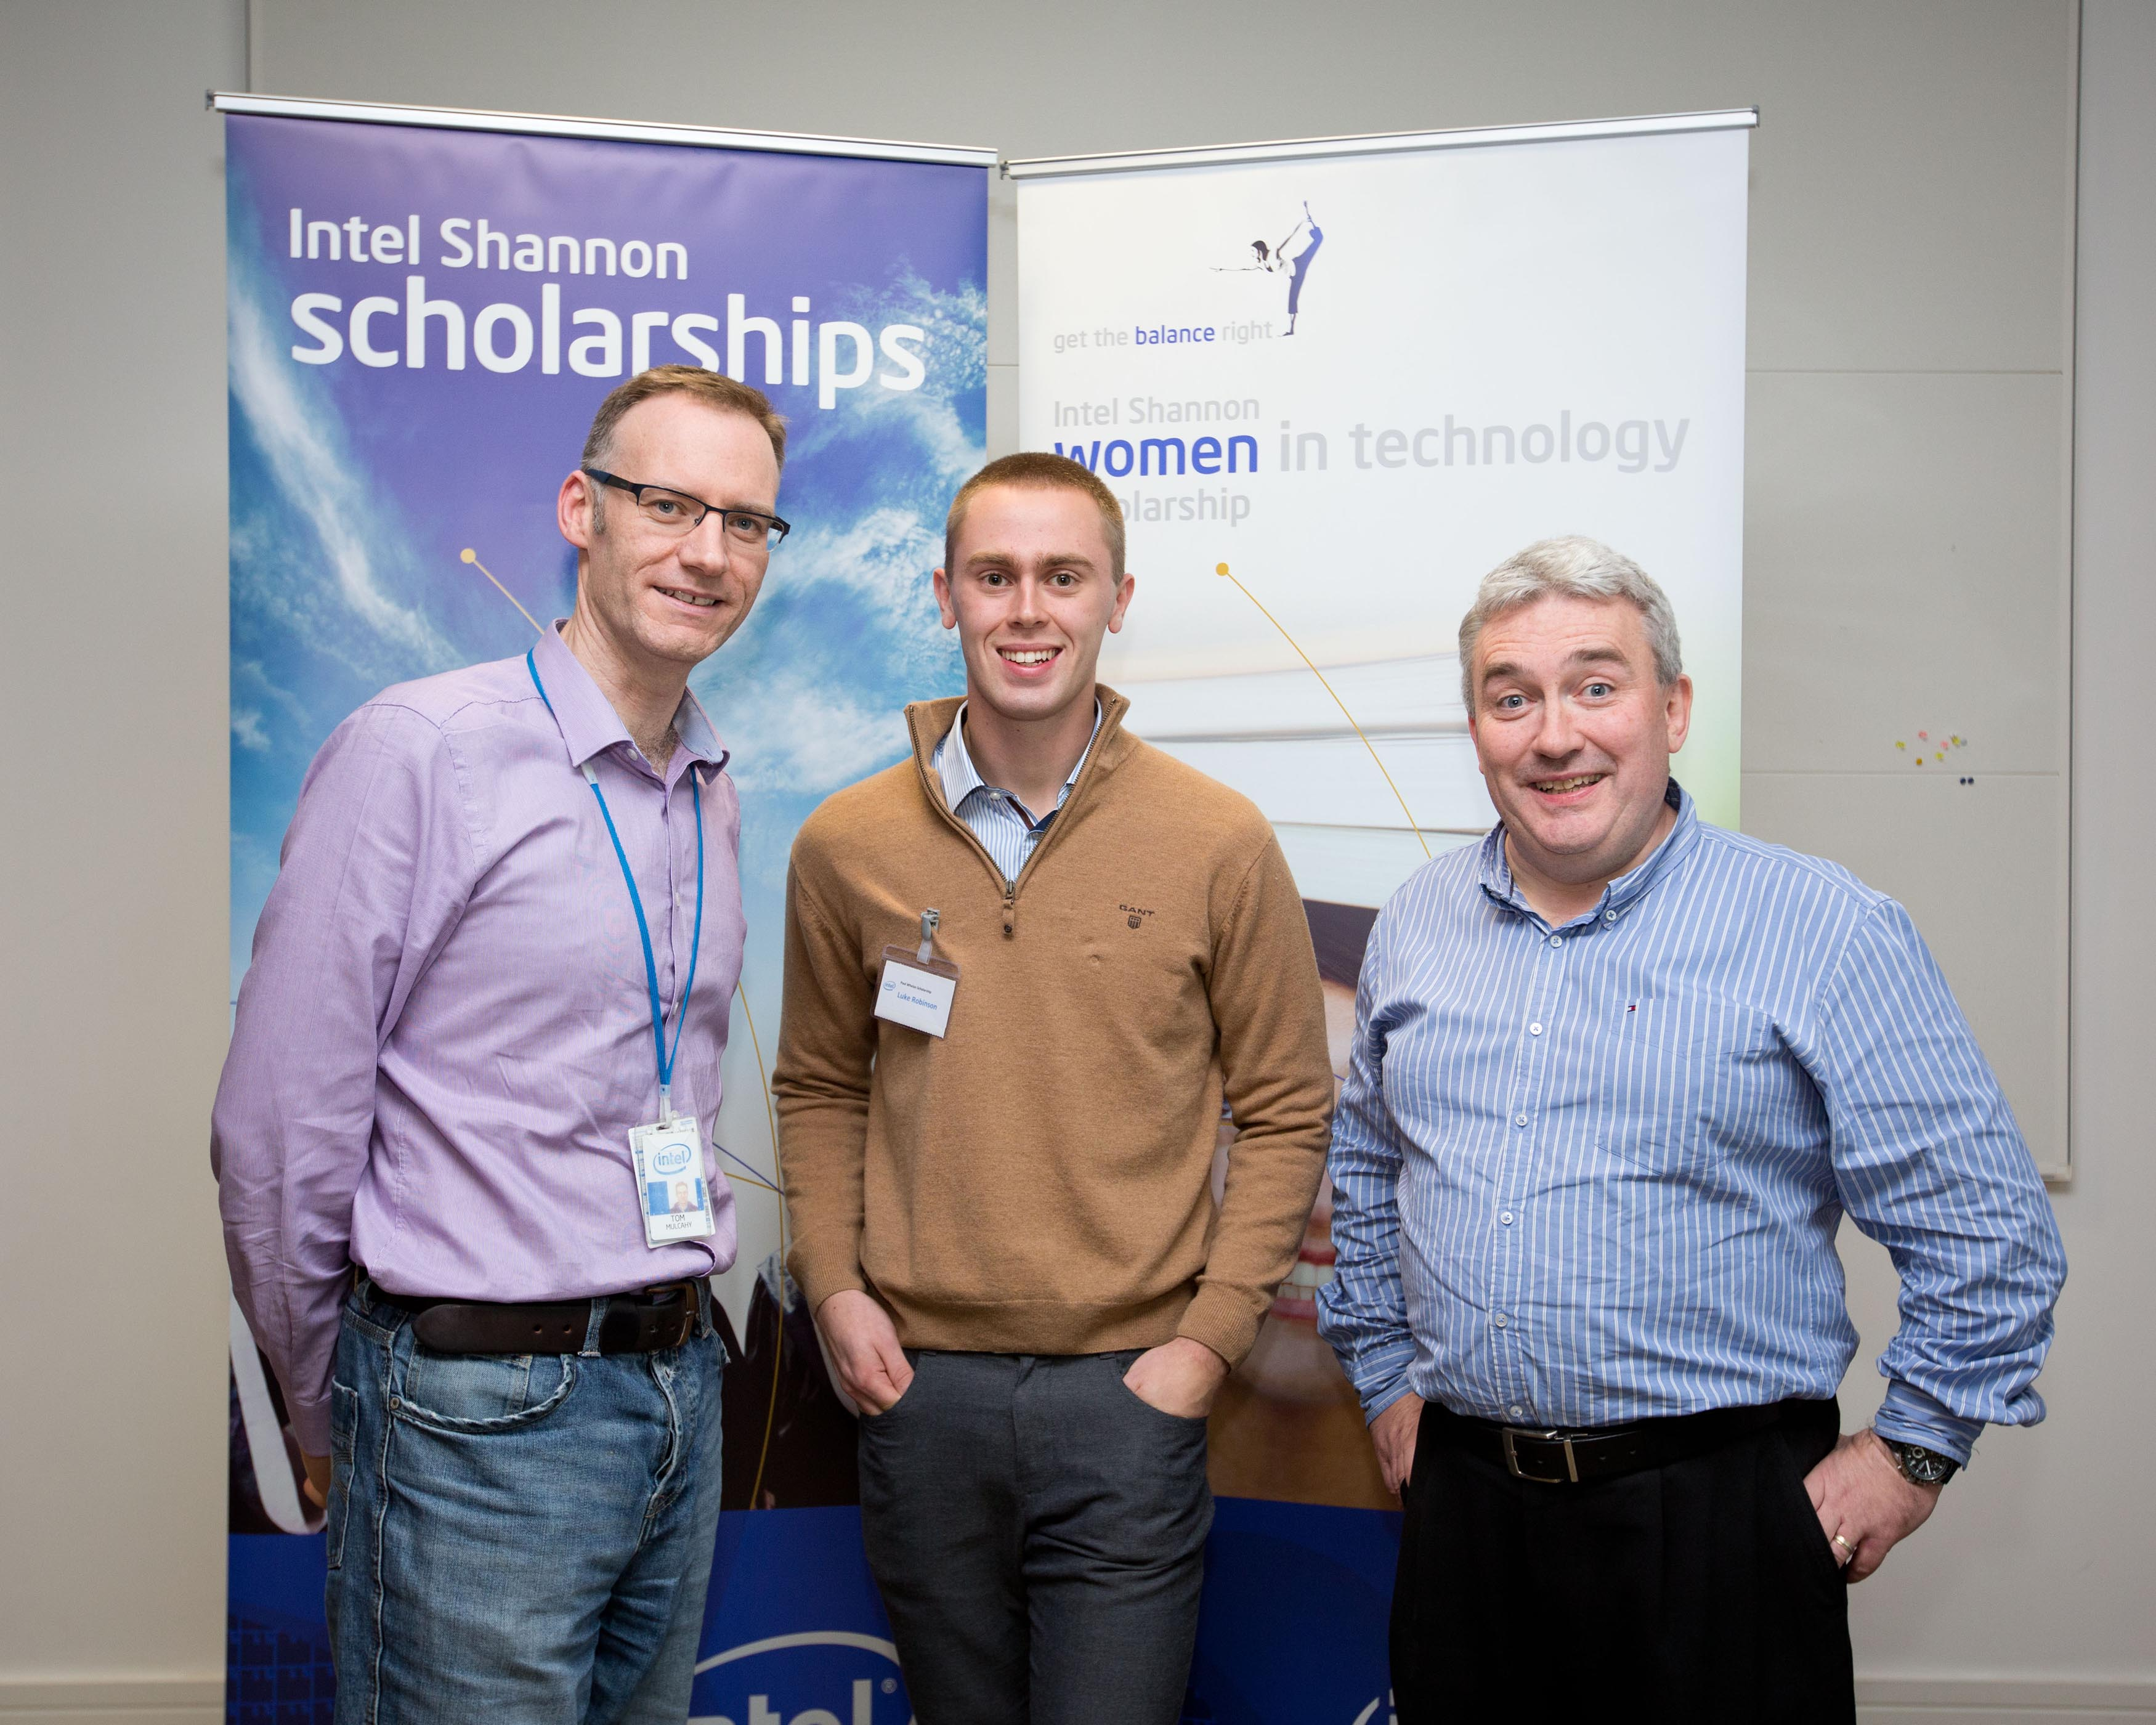 Tom Mulcahy, Intel, Luke Robinson and Michael Hennessey at Intel ninth ÒWomen in TechnologyÓ award ceremony held at Intel in Shannon. Intel in Shannon continued its focus on promoting science and engineering in the local area by holding its ninth annual Women in Technology (WIT) award ceremony recently. Five new scholarships were awarded, while seven other scholars renewed their scholarships by merit of their academic results. Current award recipients are from Clare, Limerick and Cork and are attending University of Limerick, Limerick Institute of Technology, University College Cork, NUI Galway, and Cork Institute of Technology, to study technology focused courses such as Electronic and Computer Engineering and Computer Science. Intel Shannon also awarded scholarships to a number of young male scholars starting technology and engineering courses in the University of Limerick as part of the Paul Whelan memorial scholarship program. The scholarship programs provide a unique opportunity for Intel to encourage a new generation of high-achieving young people to take up the challenge of a career in science and technology. Over the nine years since the program was first initiated, Intel Shannon has invested almost $500,000 in scholarships and placement programs. Pic Sean Curtin Photo.